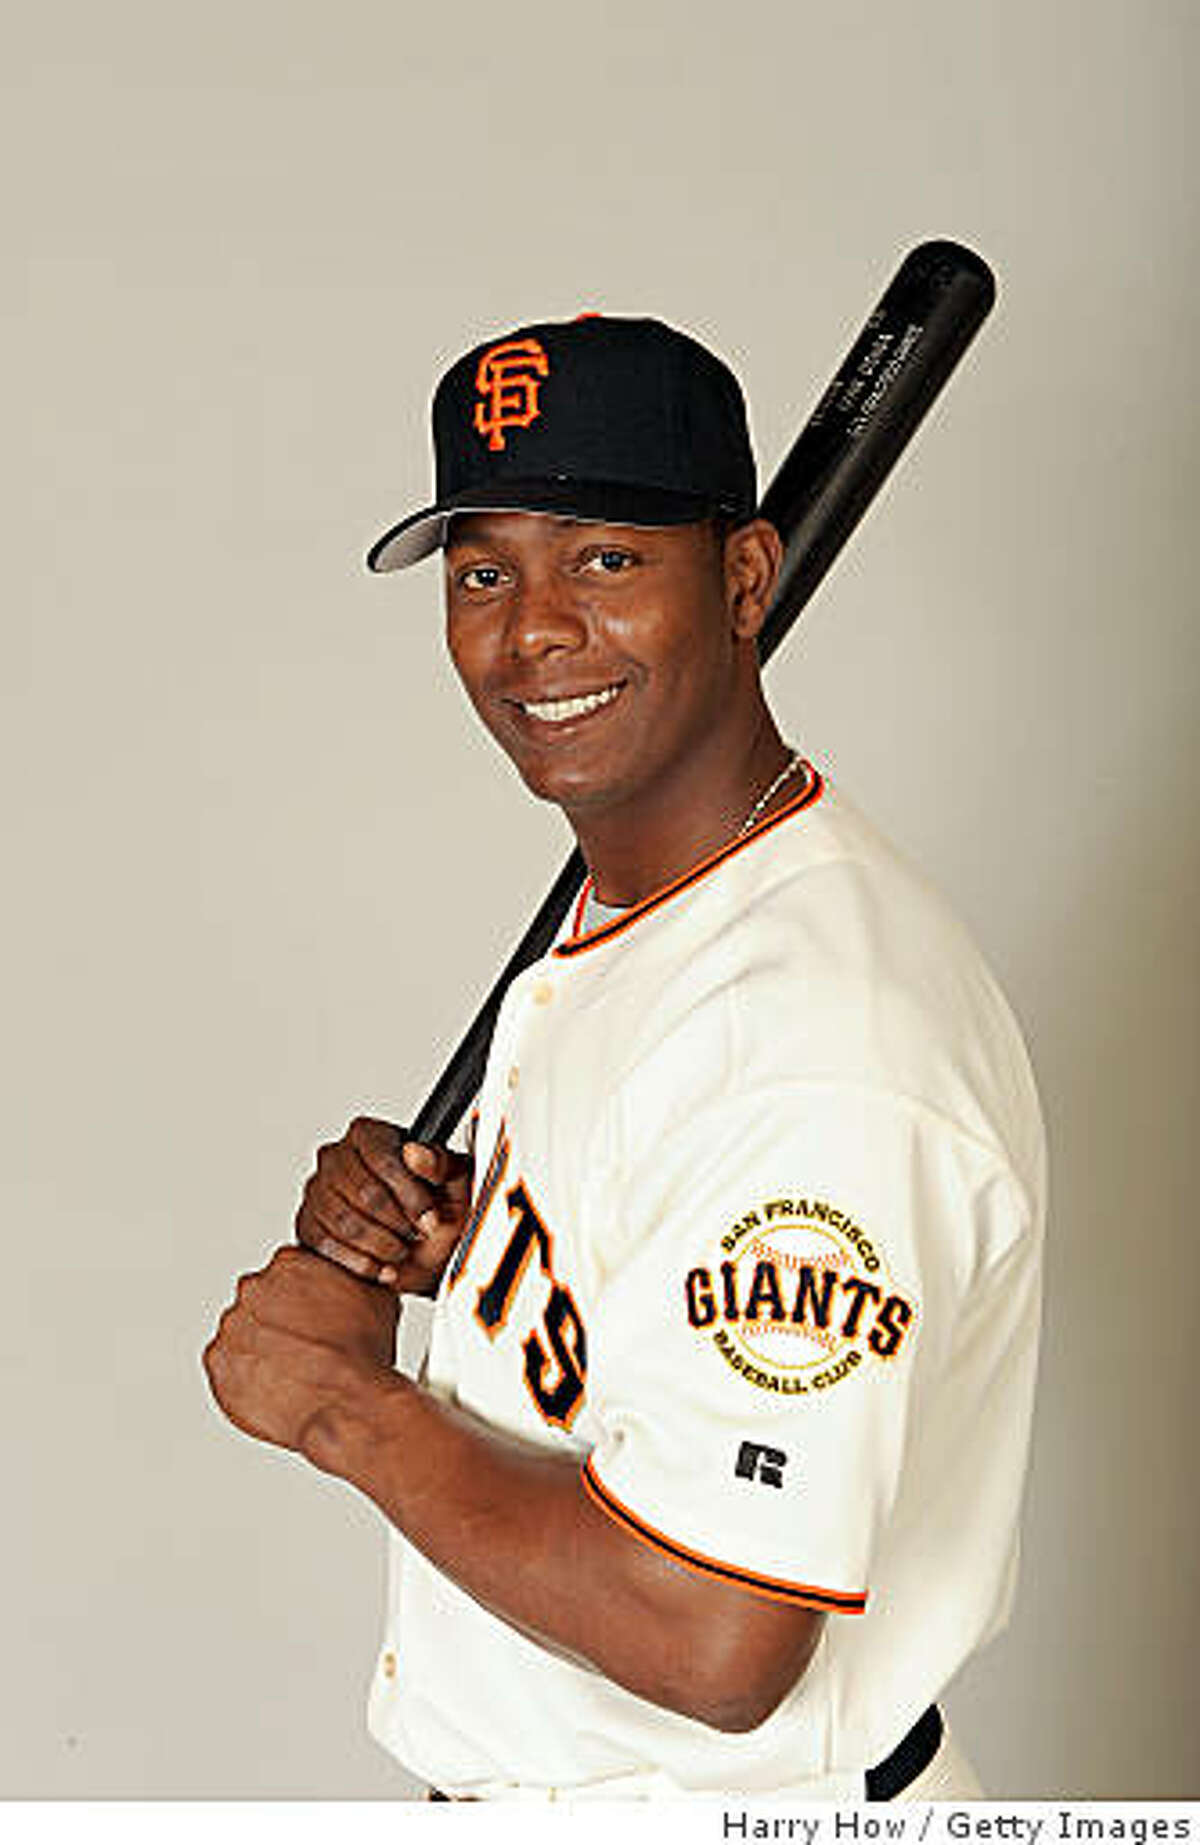 SCOTTSDALE, AZ - FEBRUARY 23: Edgar Renteria #16 of the San Francisco Giants poses during photo day at Scottsdale Stadium on February 23, 2009 in Scottsdale, Arizona. (Photo by Harry How/Getty Images)